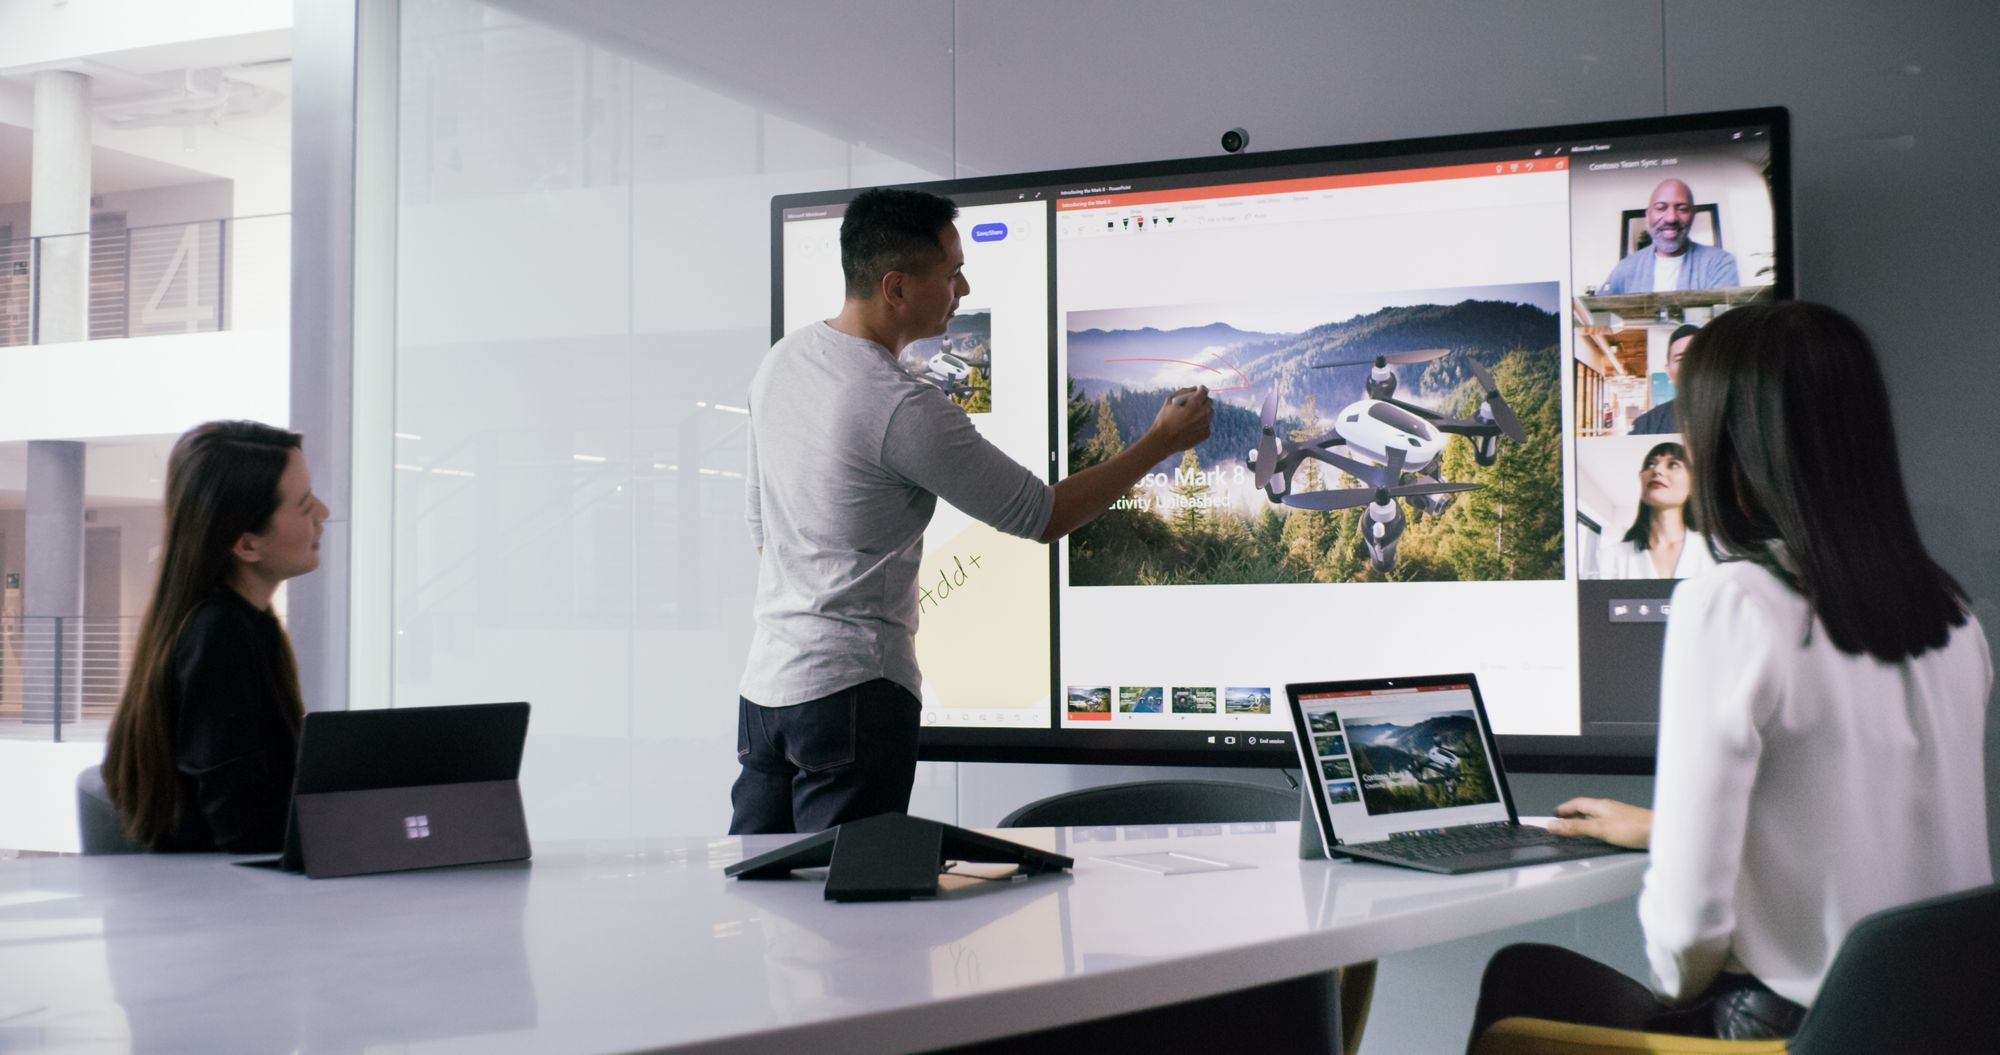 In a meeting room, two women are sitting at a conference table with their Surface devices and a man is standing at the Surface Hub, working on a presentation with the Surface Hub 2 Pen